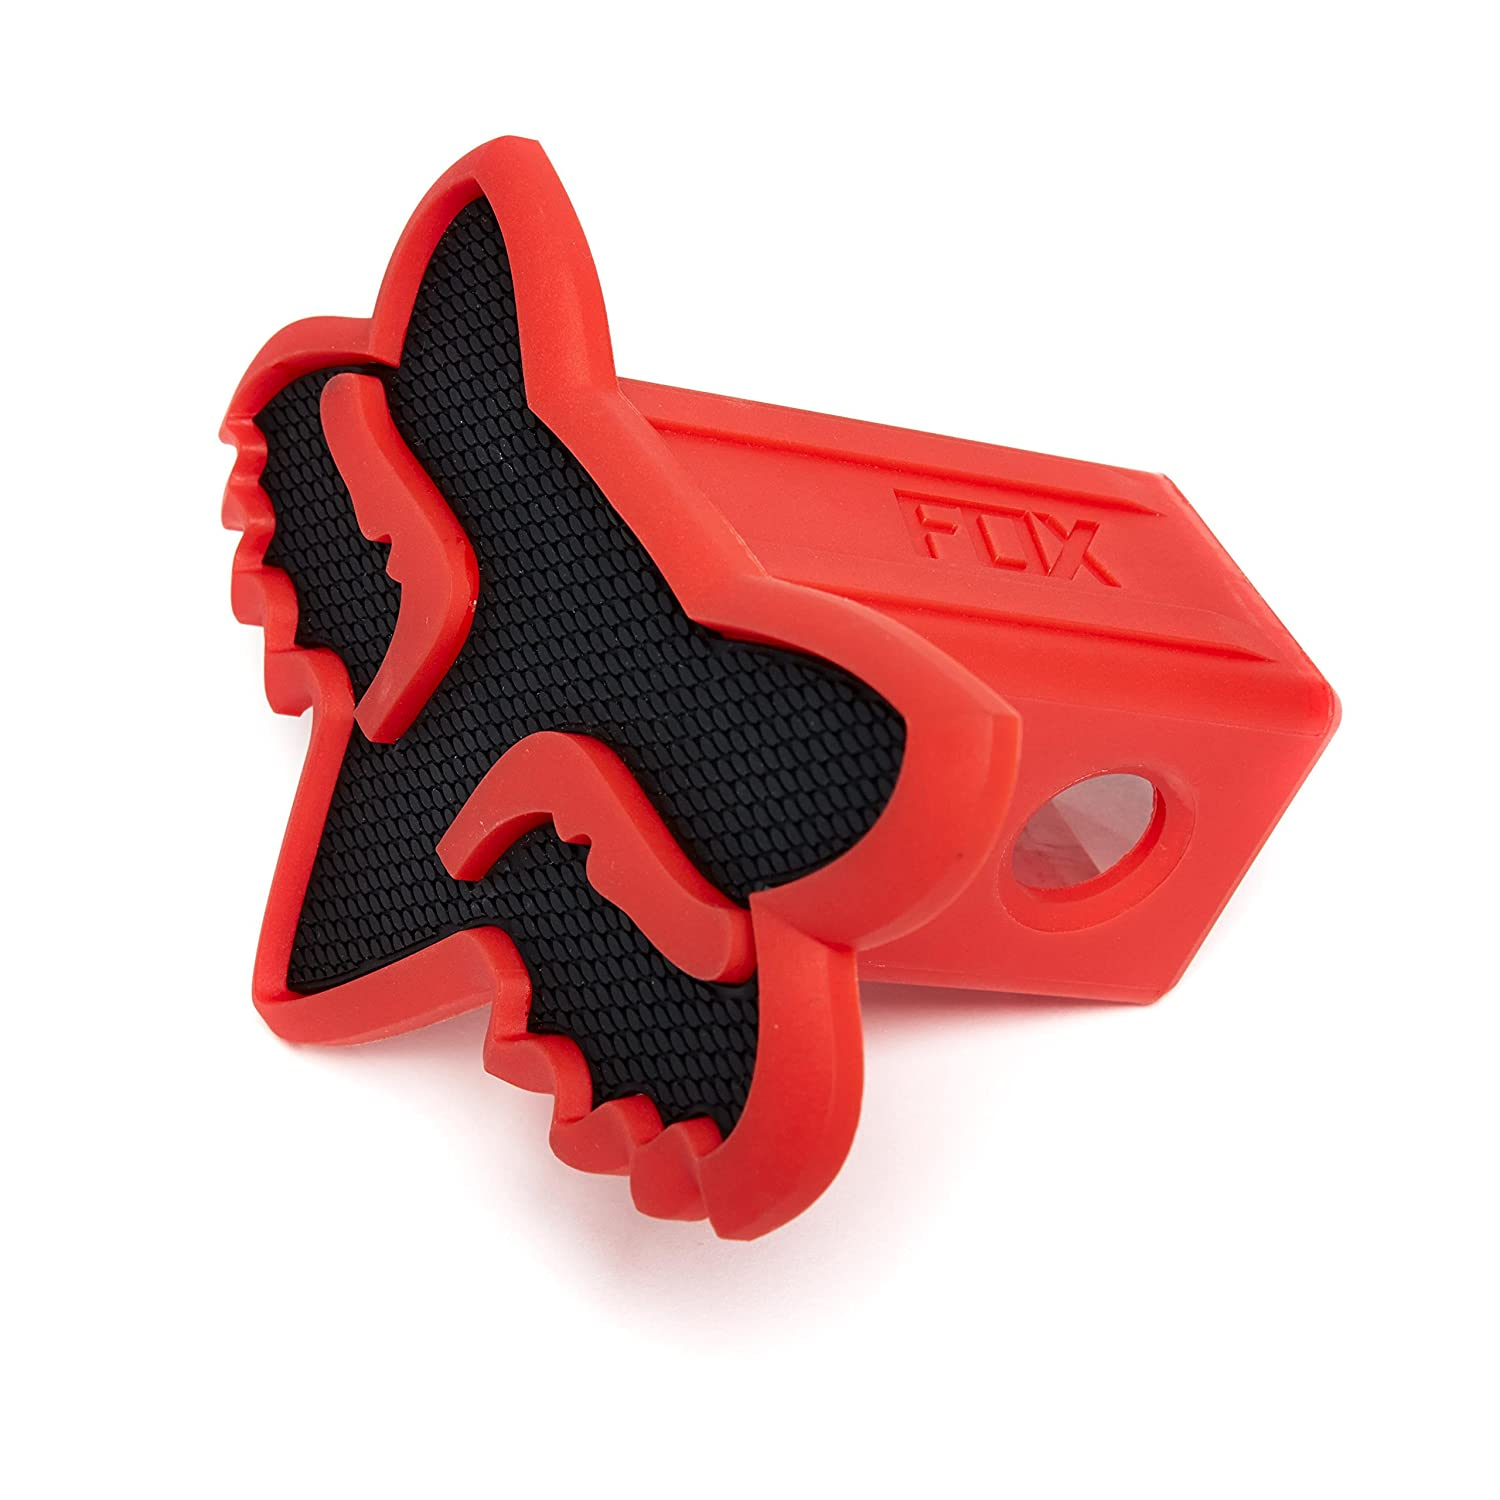 Black//Charcoal Fox Racing Trailer Hitch Cover